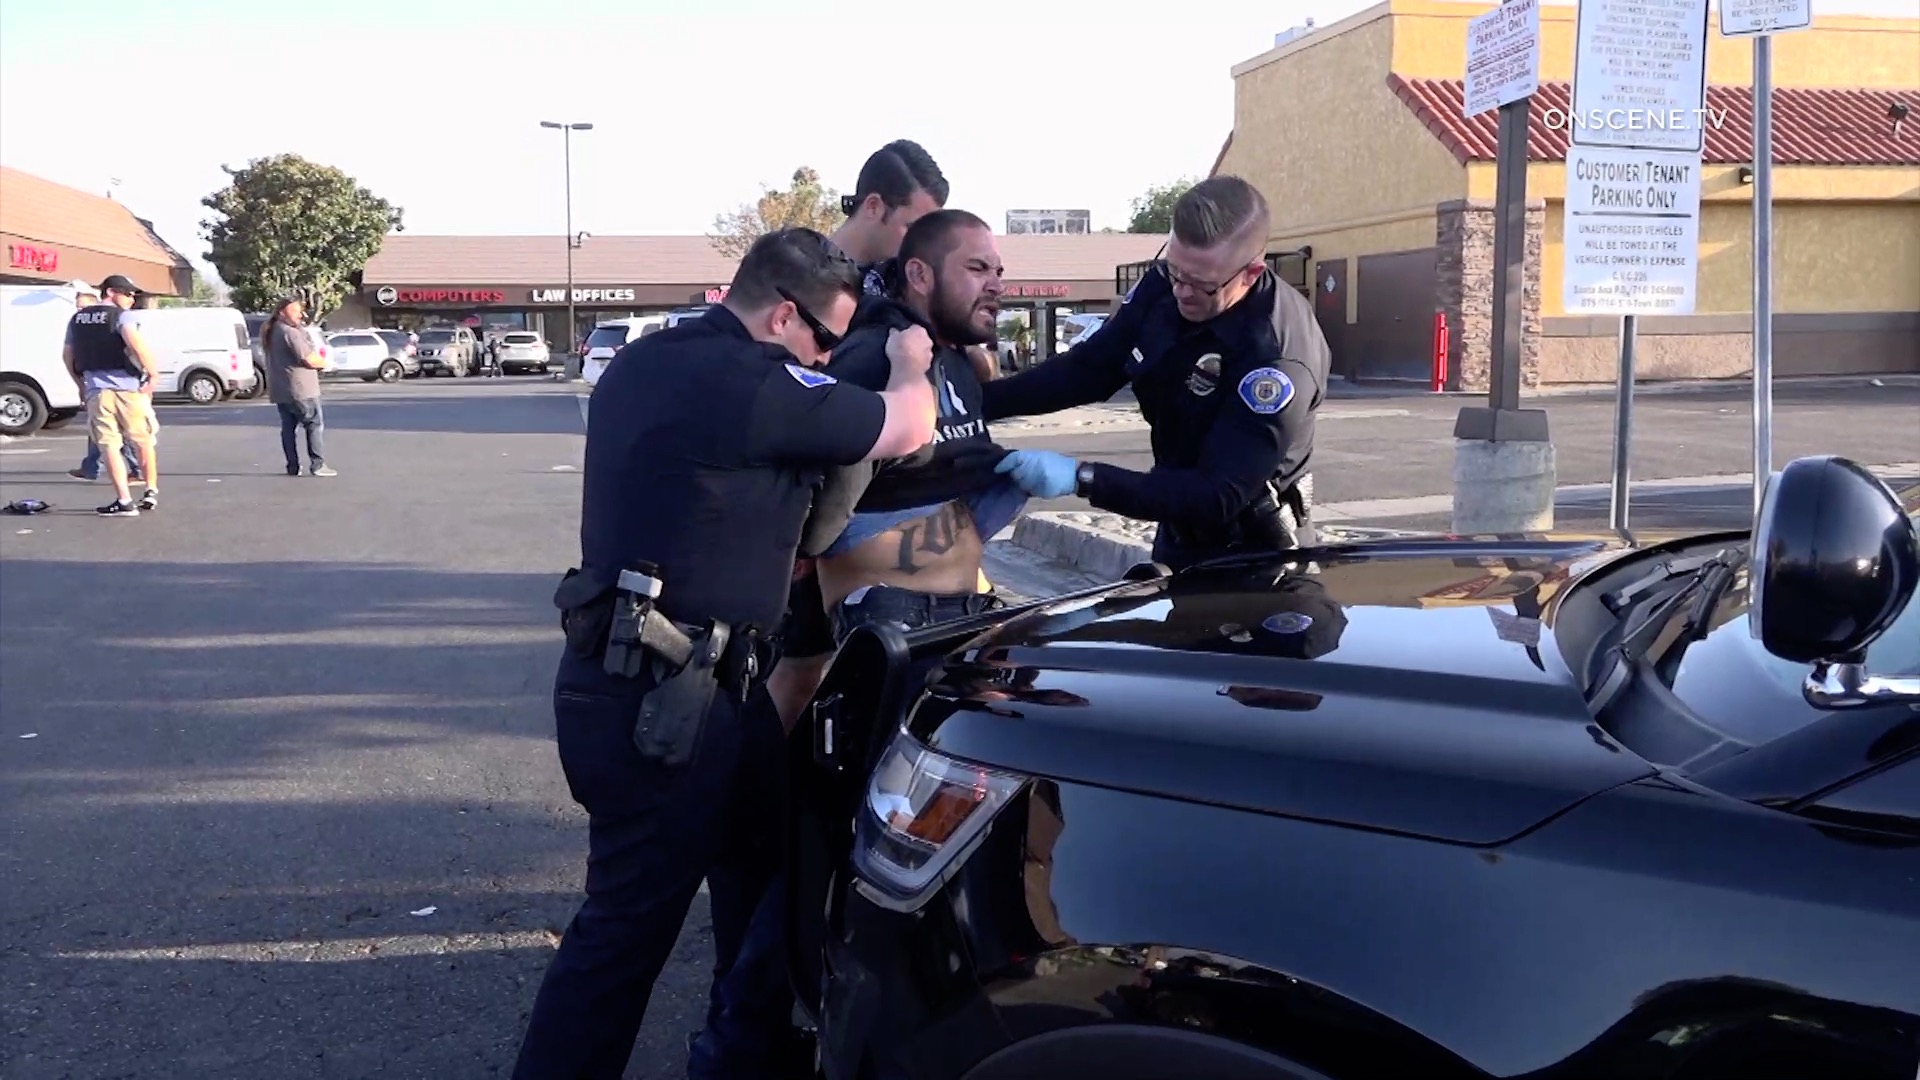 Officers handcuff a man suspected in a series of attacks that left at least four people dead in Garden Grove on Aug. 7, 2019. (Credit: OnScene.TV)